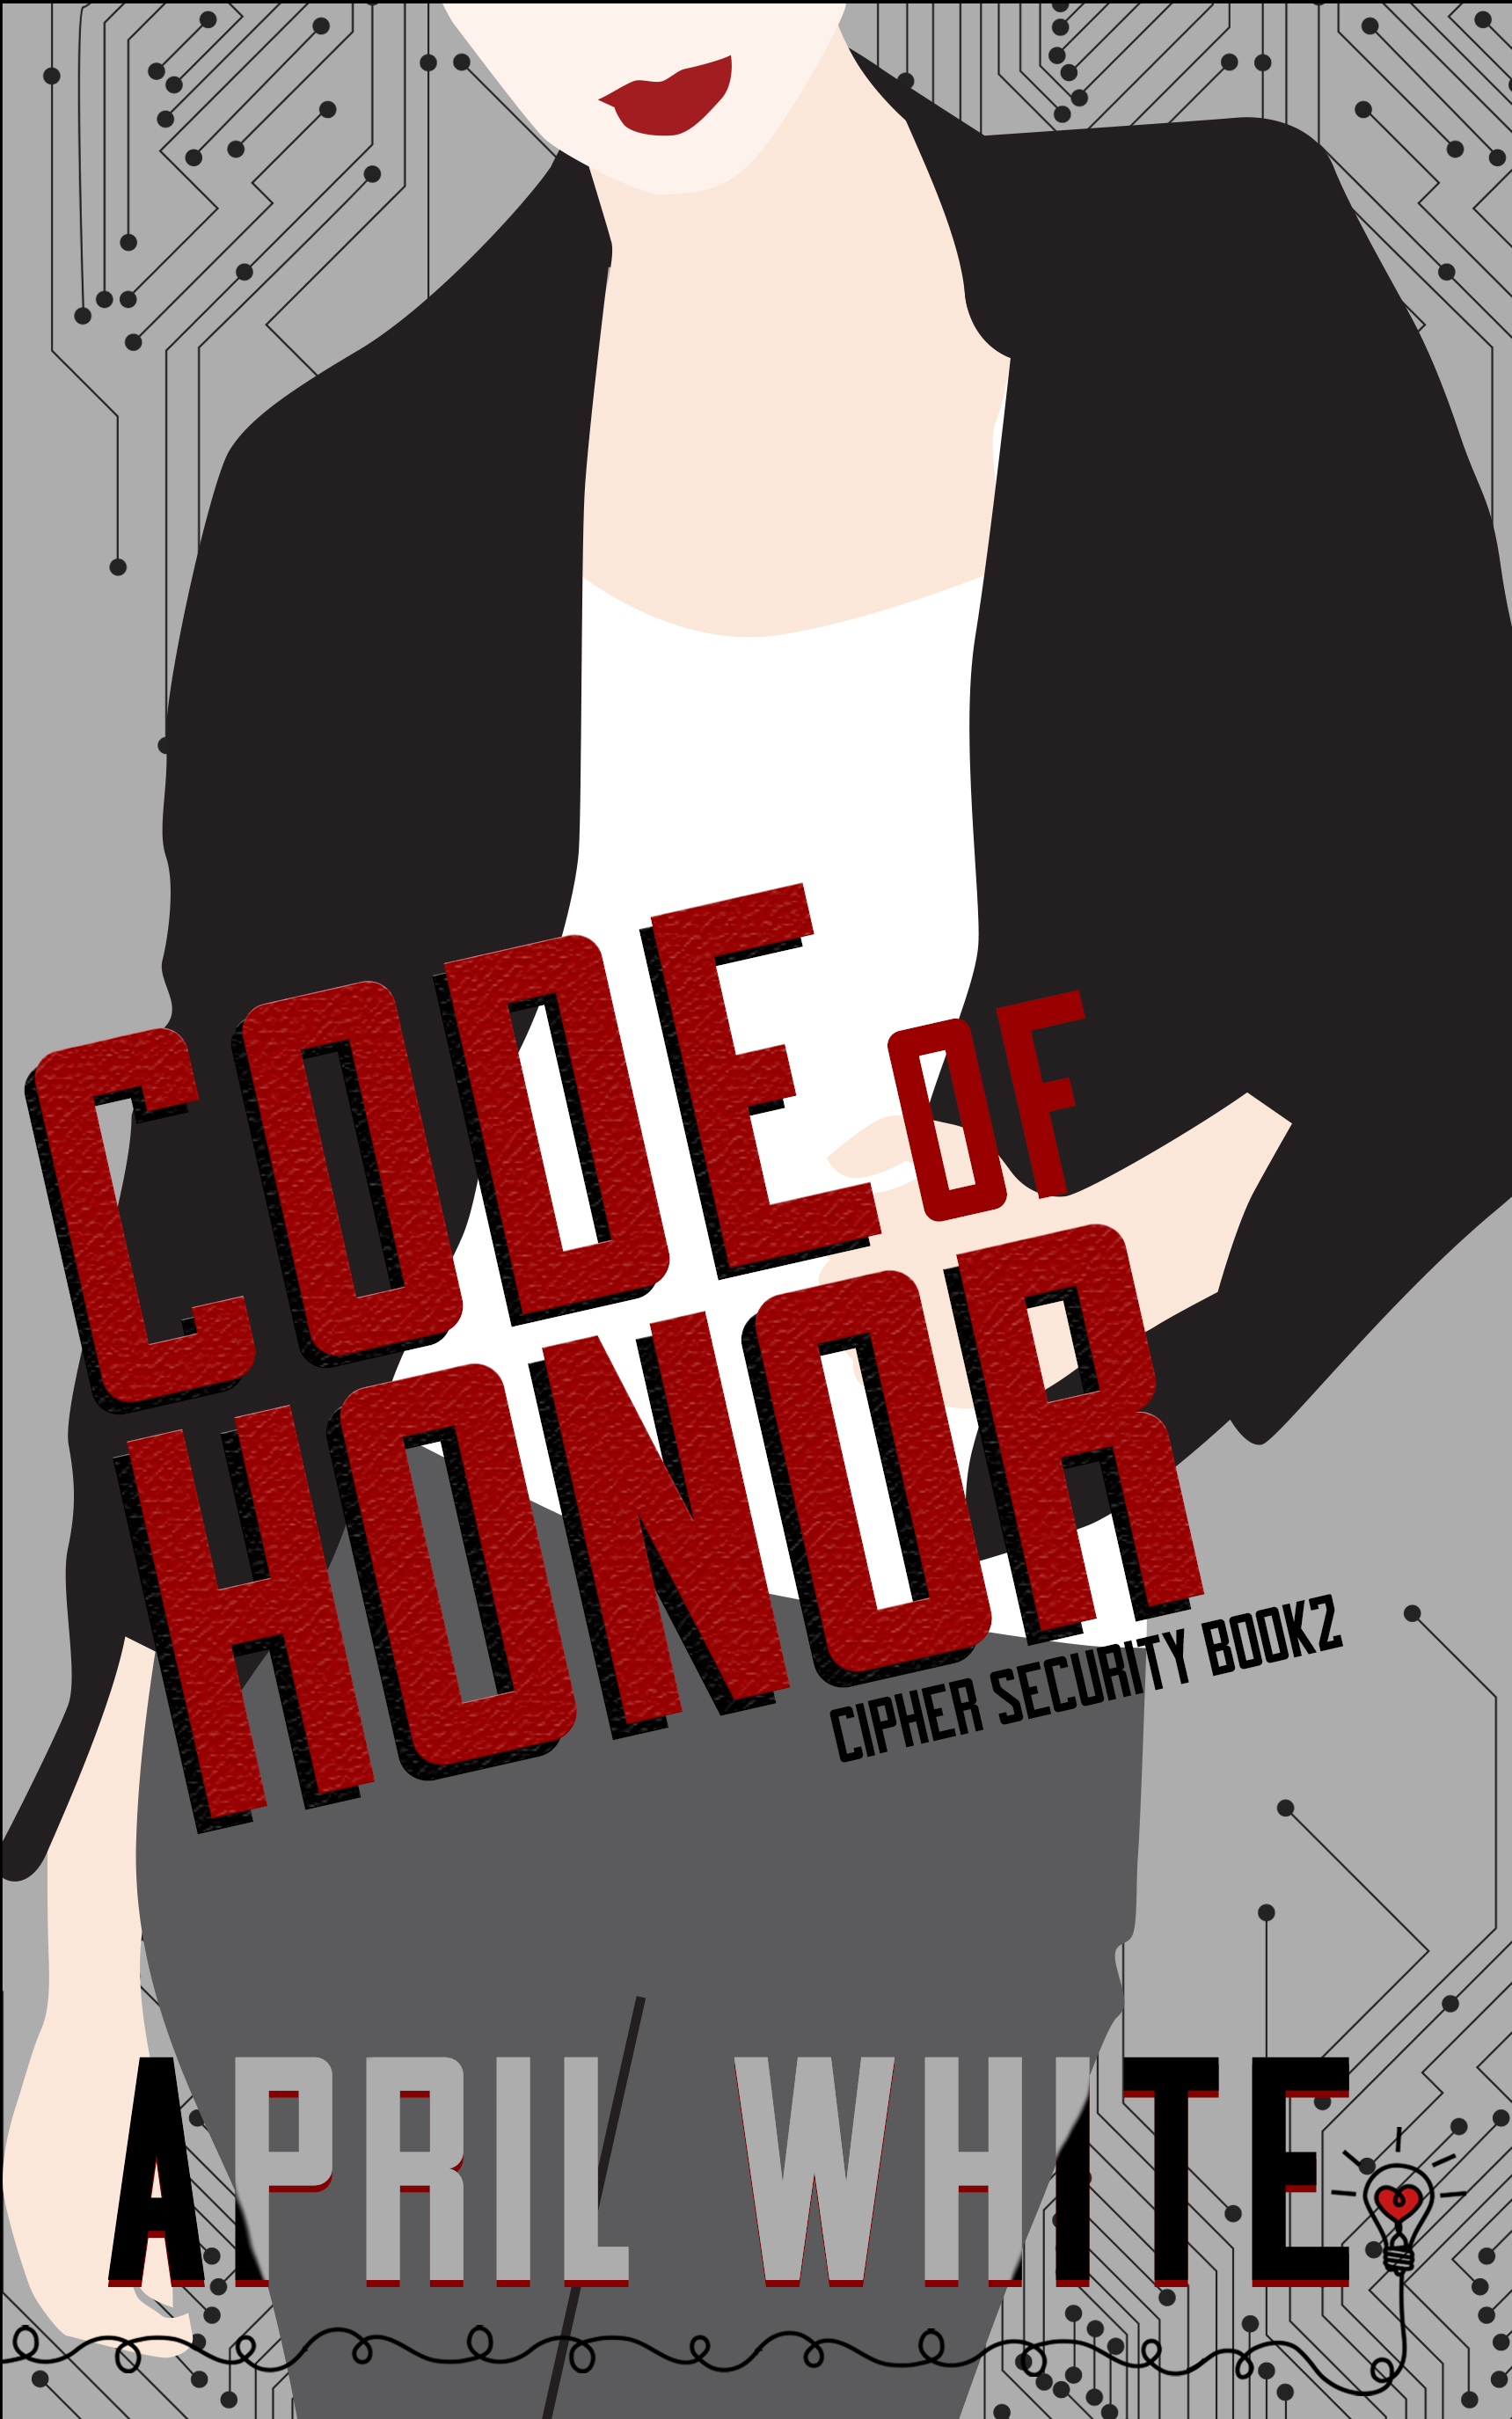 cs-code-of-honor copy